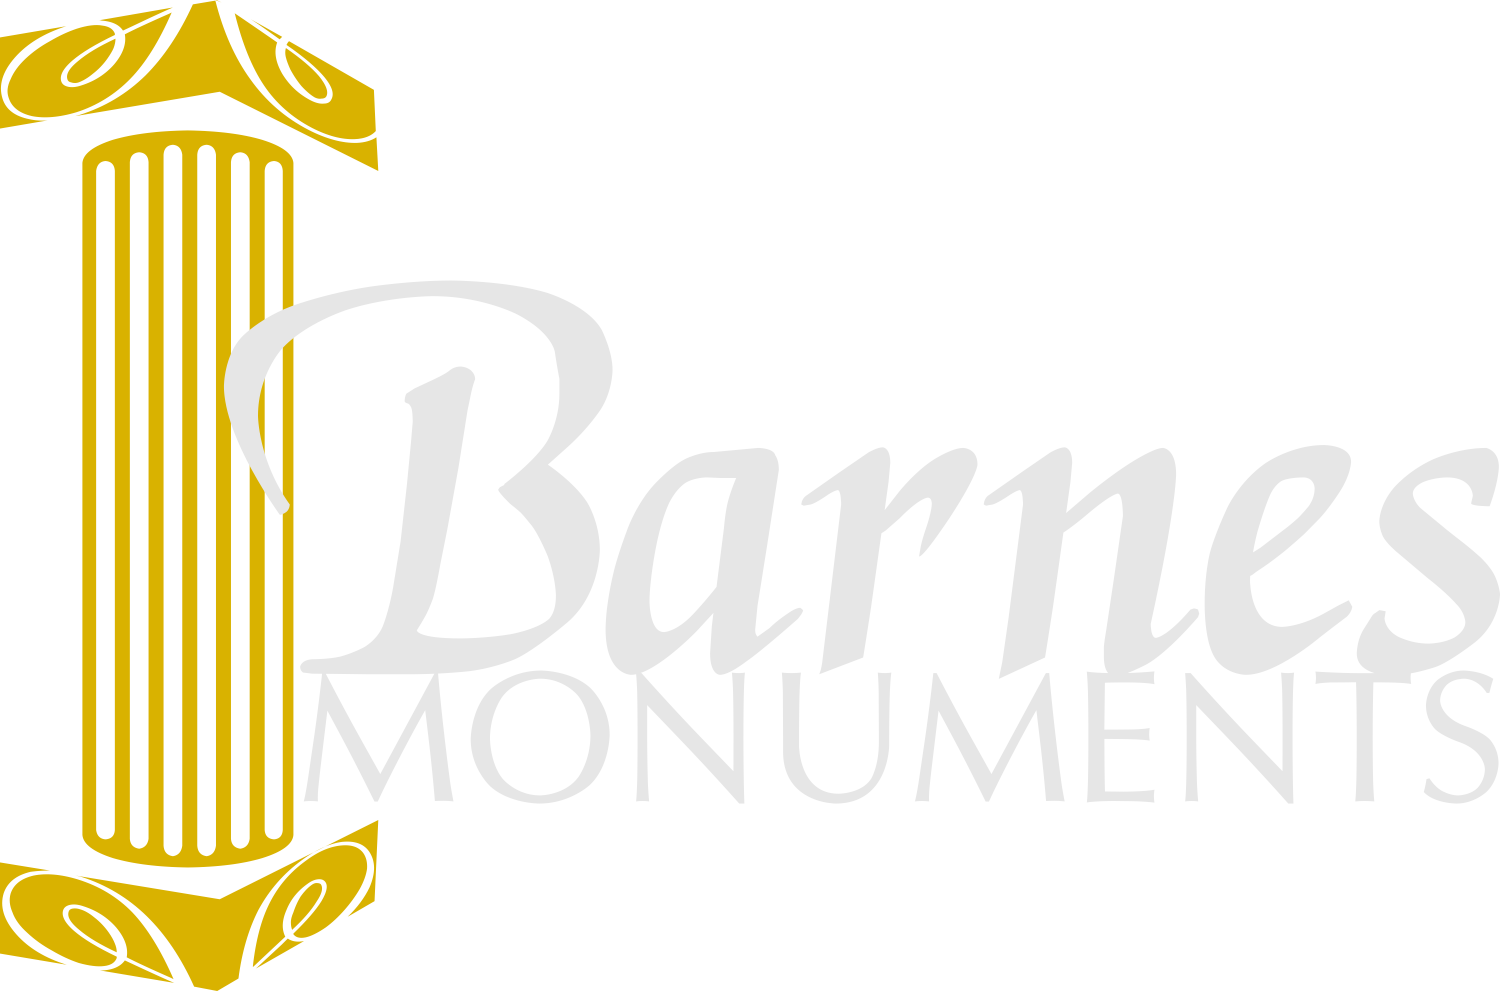 barnesmonuments.com at Pressable